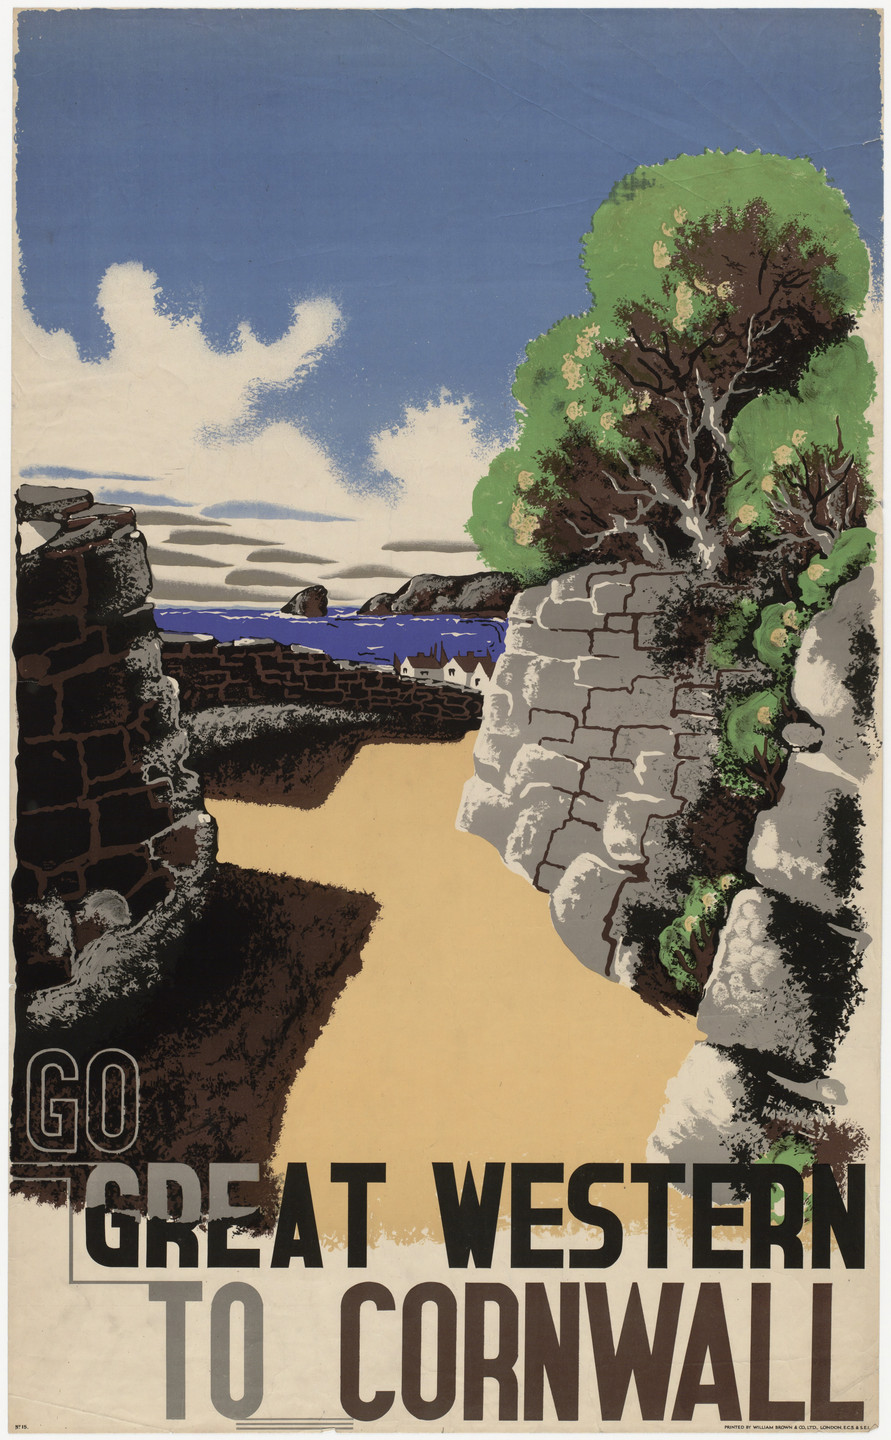 E. McKnight Kauffer. Go Great Western to Cornwall. 1932